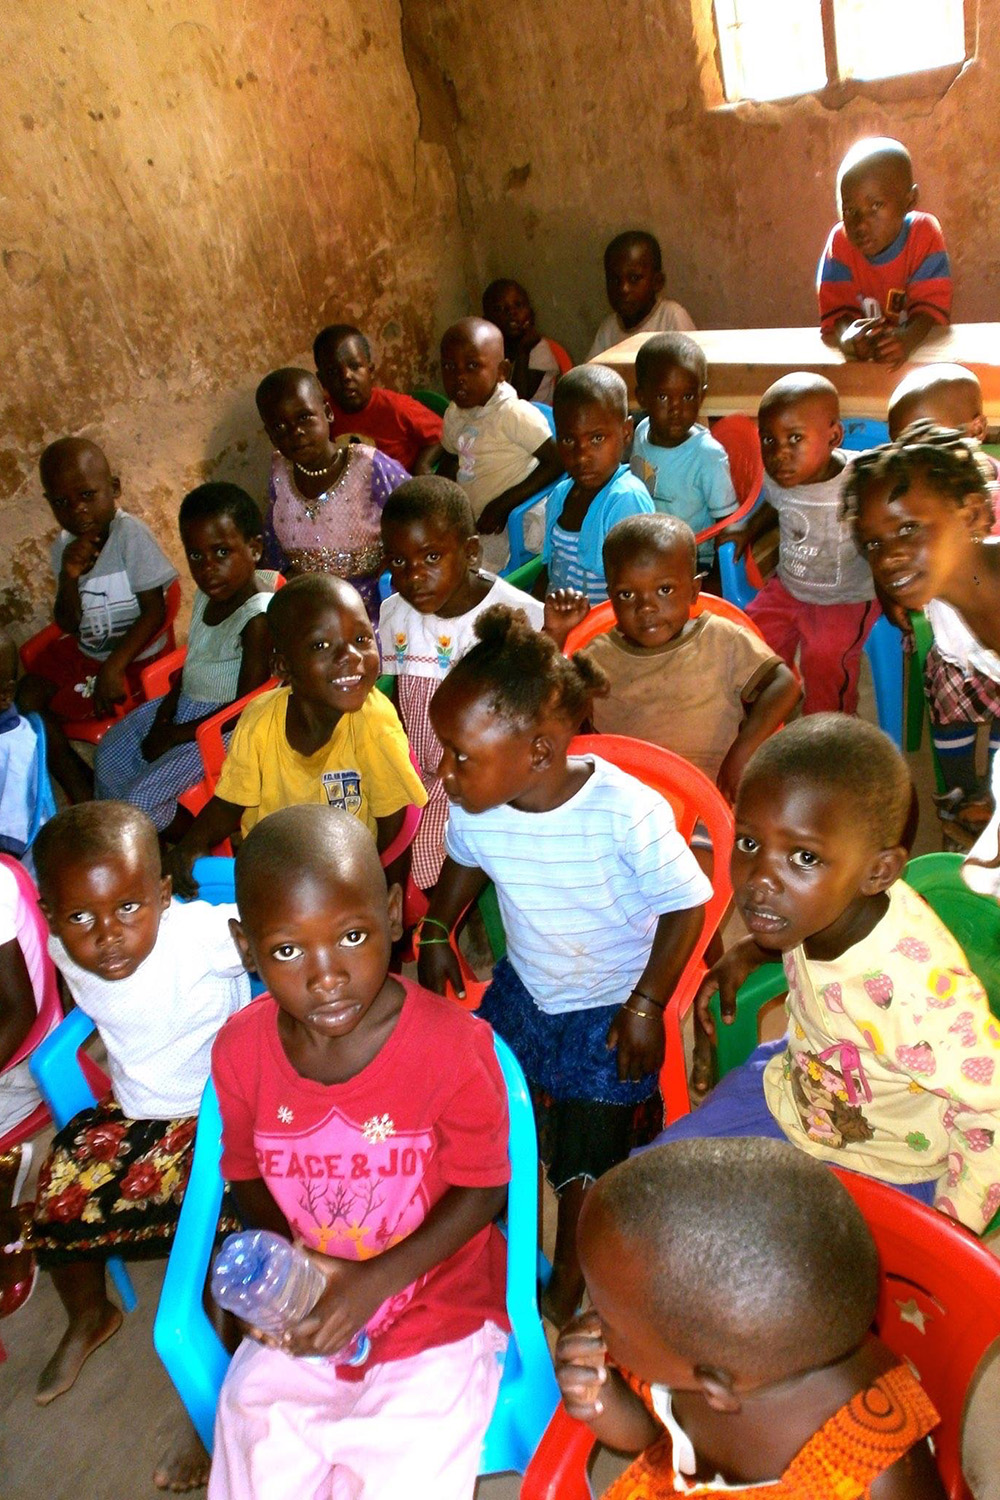 Classroom - Sponsor a child's education in Africa - Chances for Children